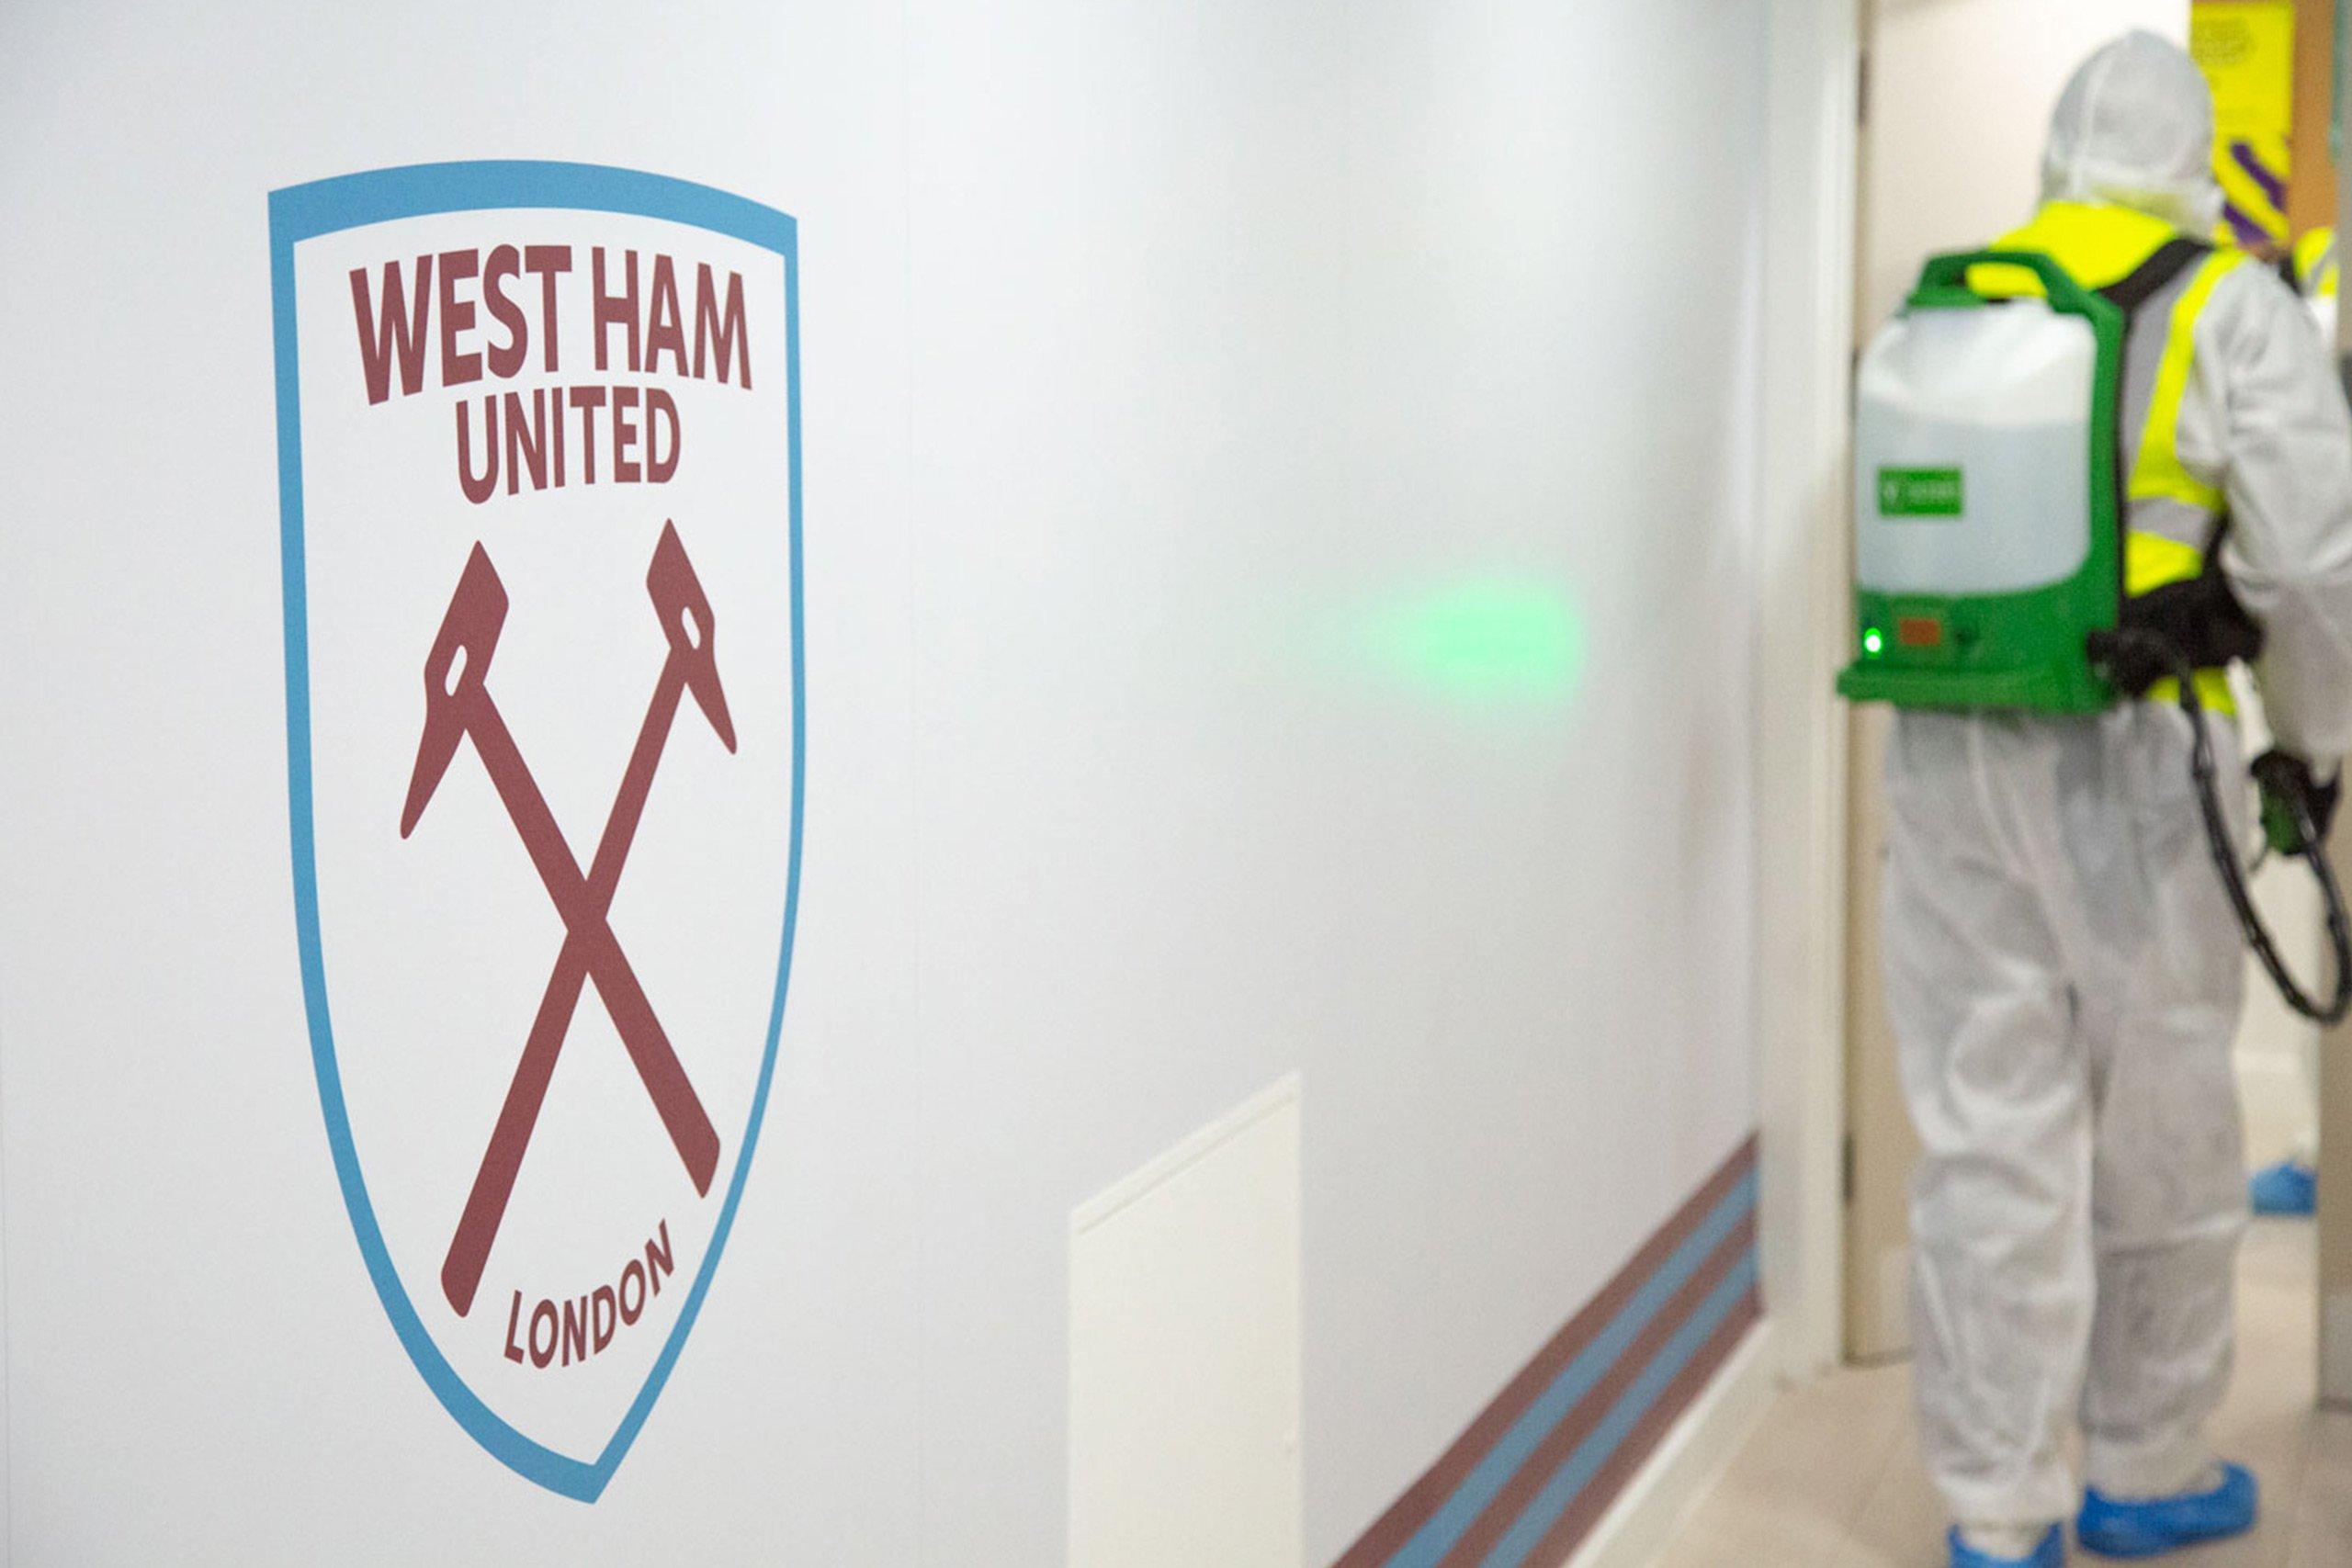 Hallway at West Ham FC with cleaner